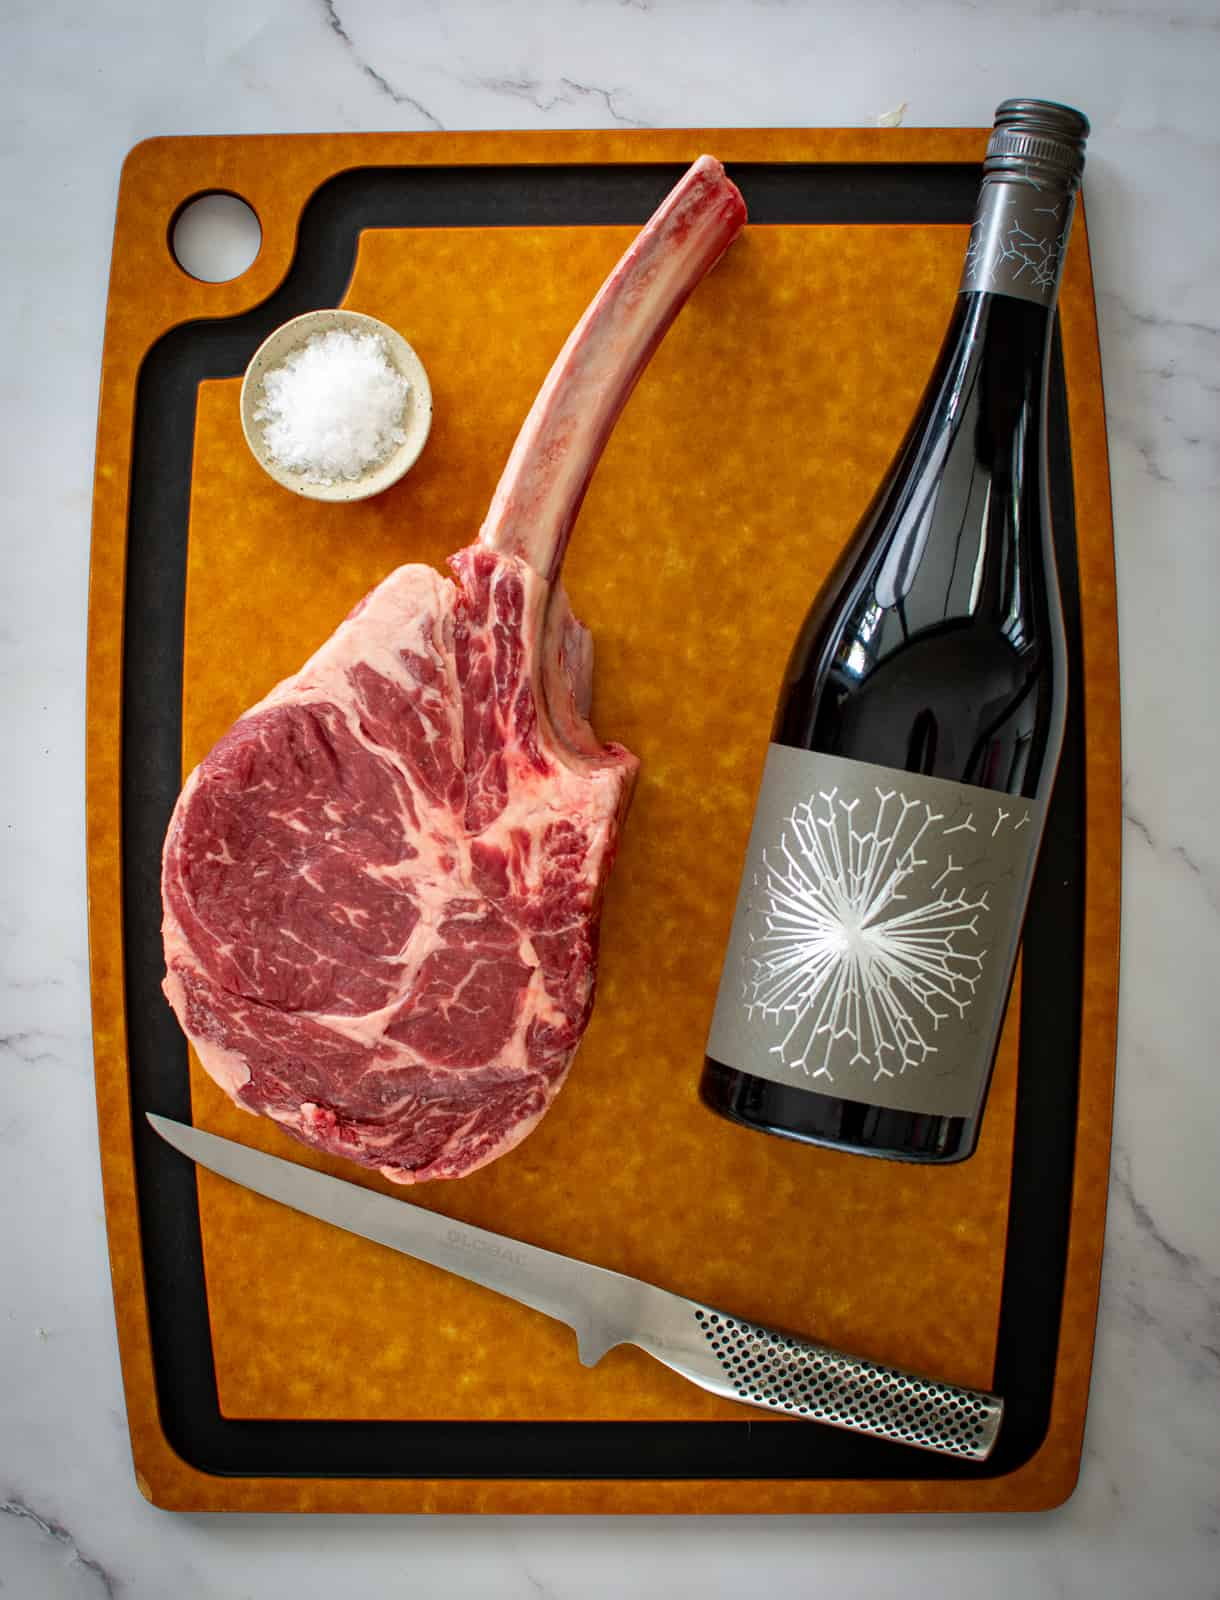 tomahawk steak and a bottle of wine on a chopping board